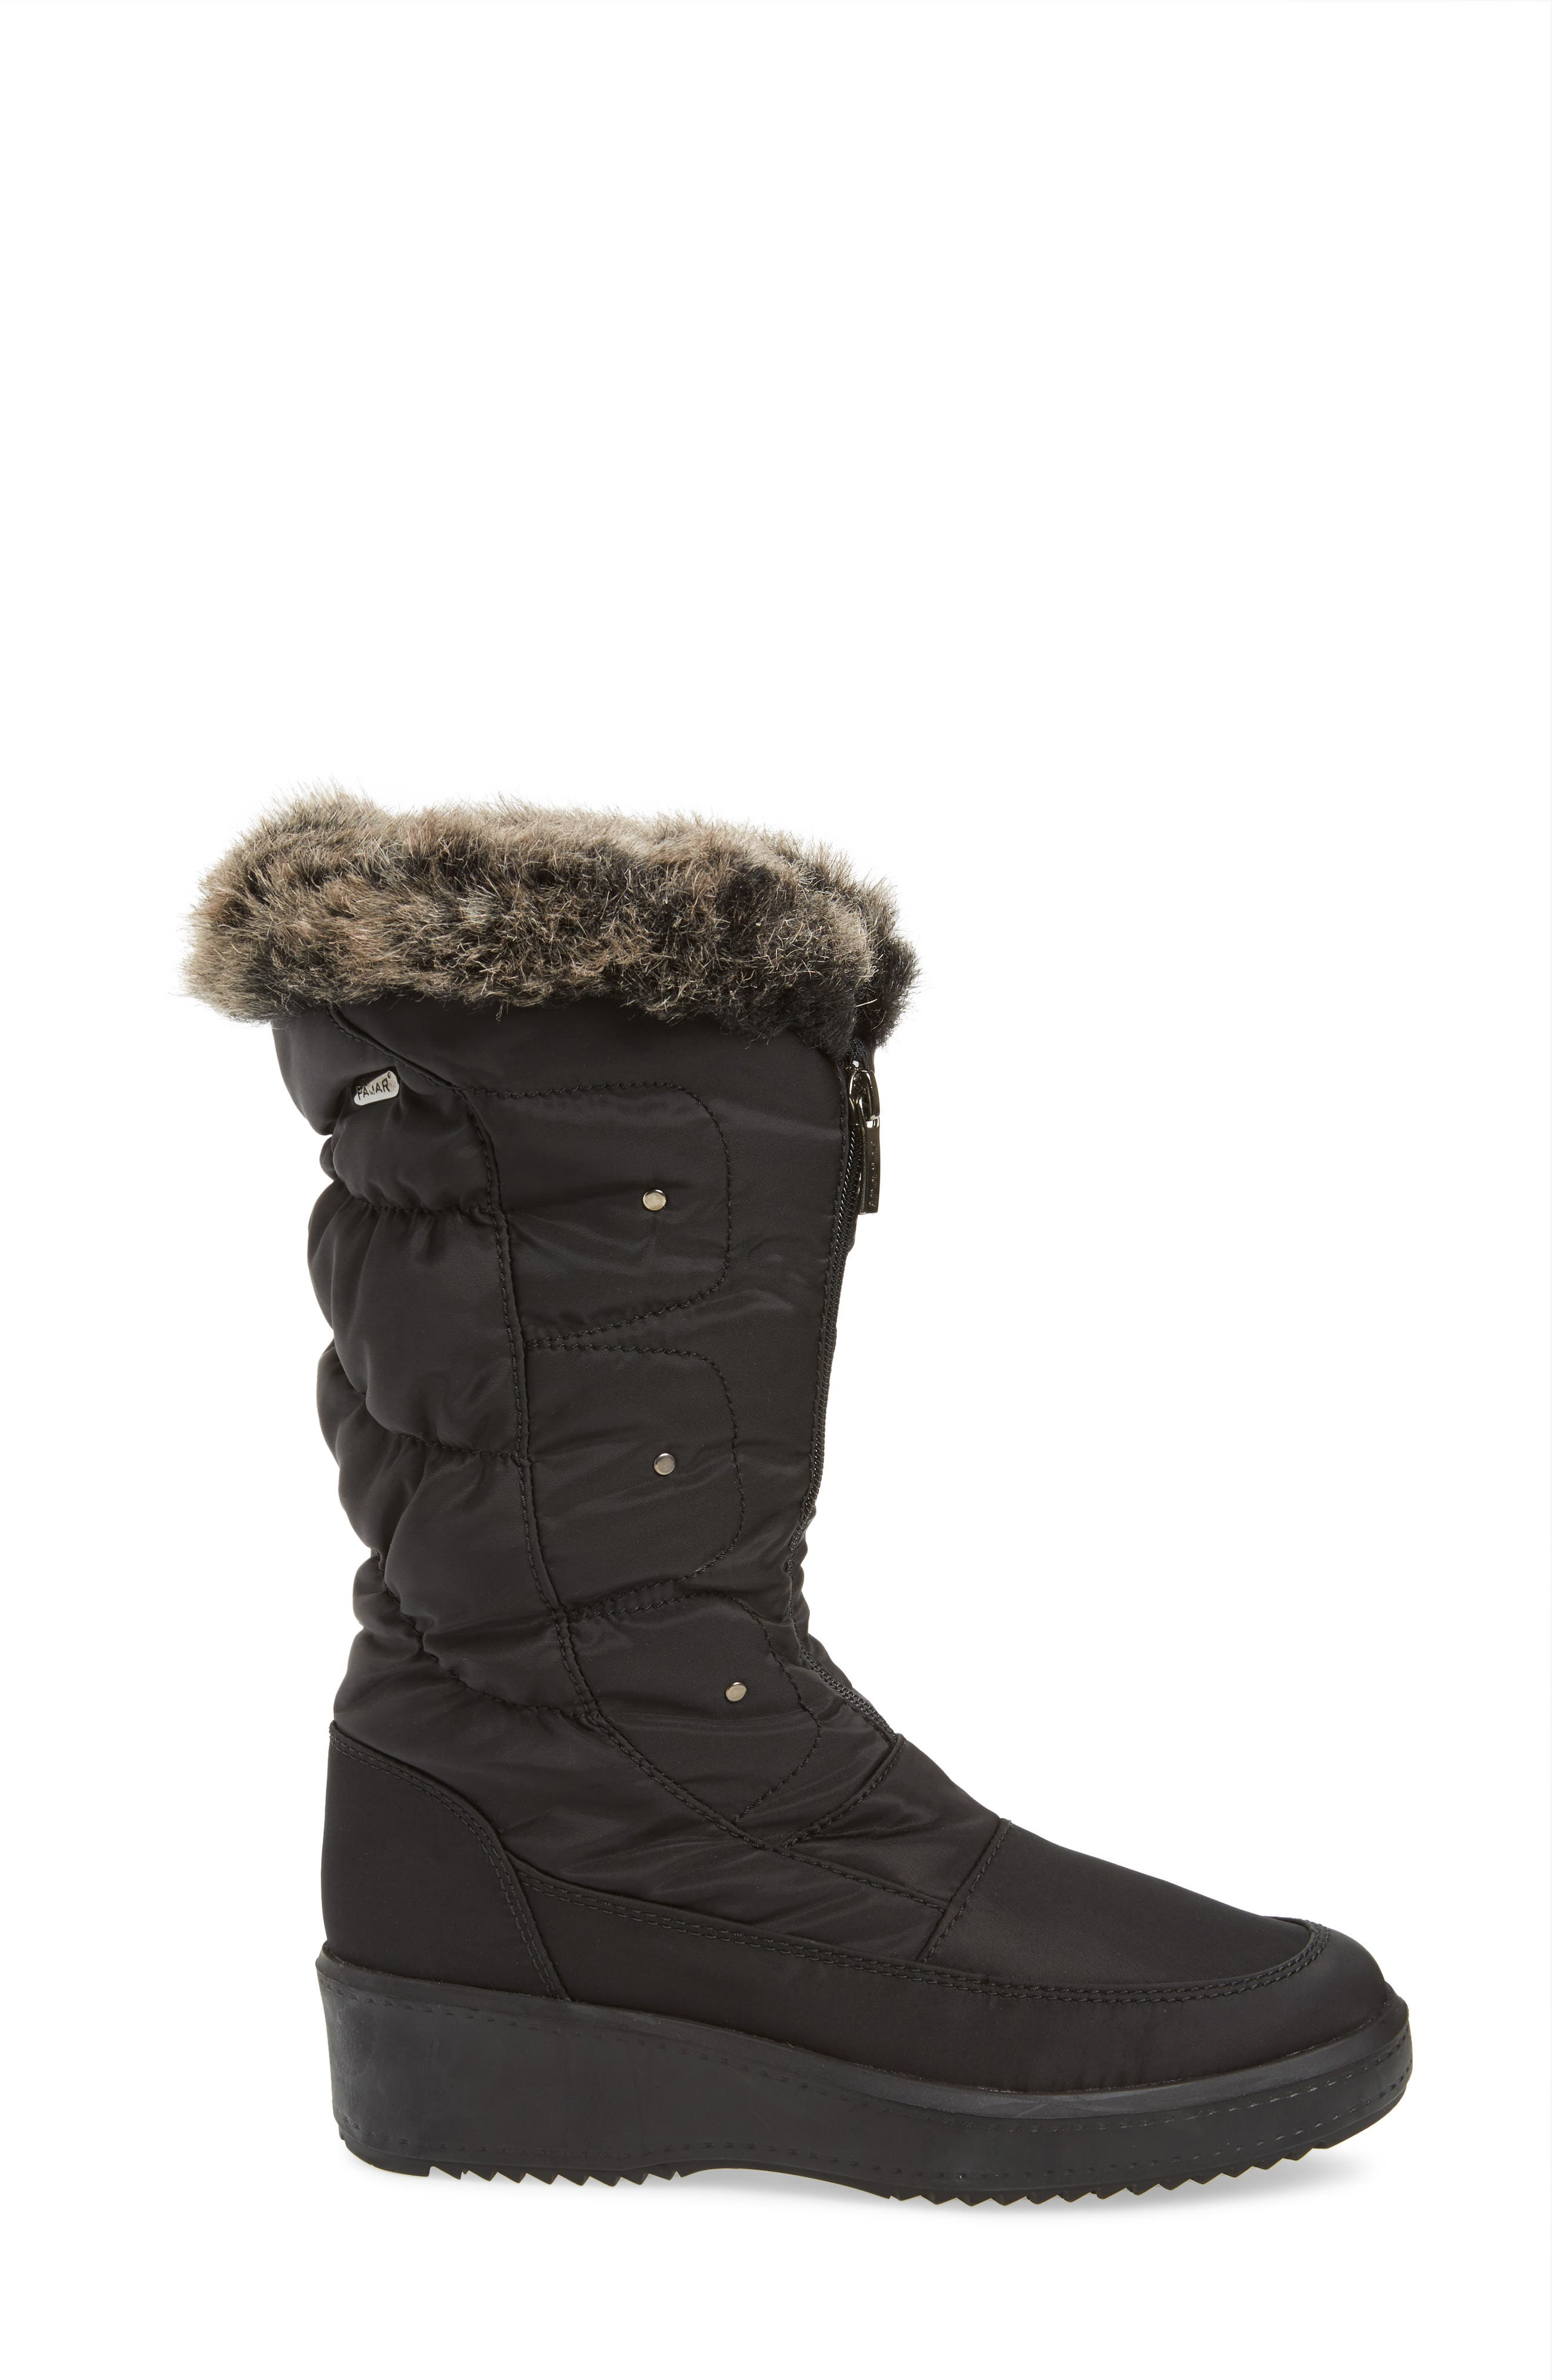 'Louise' Weatherproof Boot,                             Alternate thumbnail 4, color,                             001